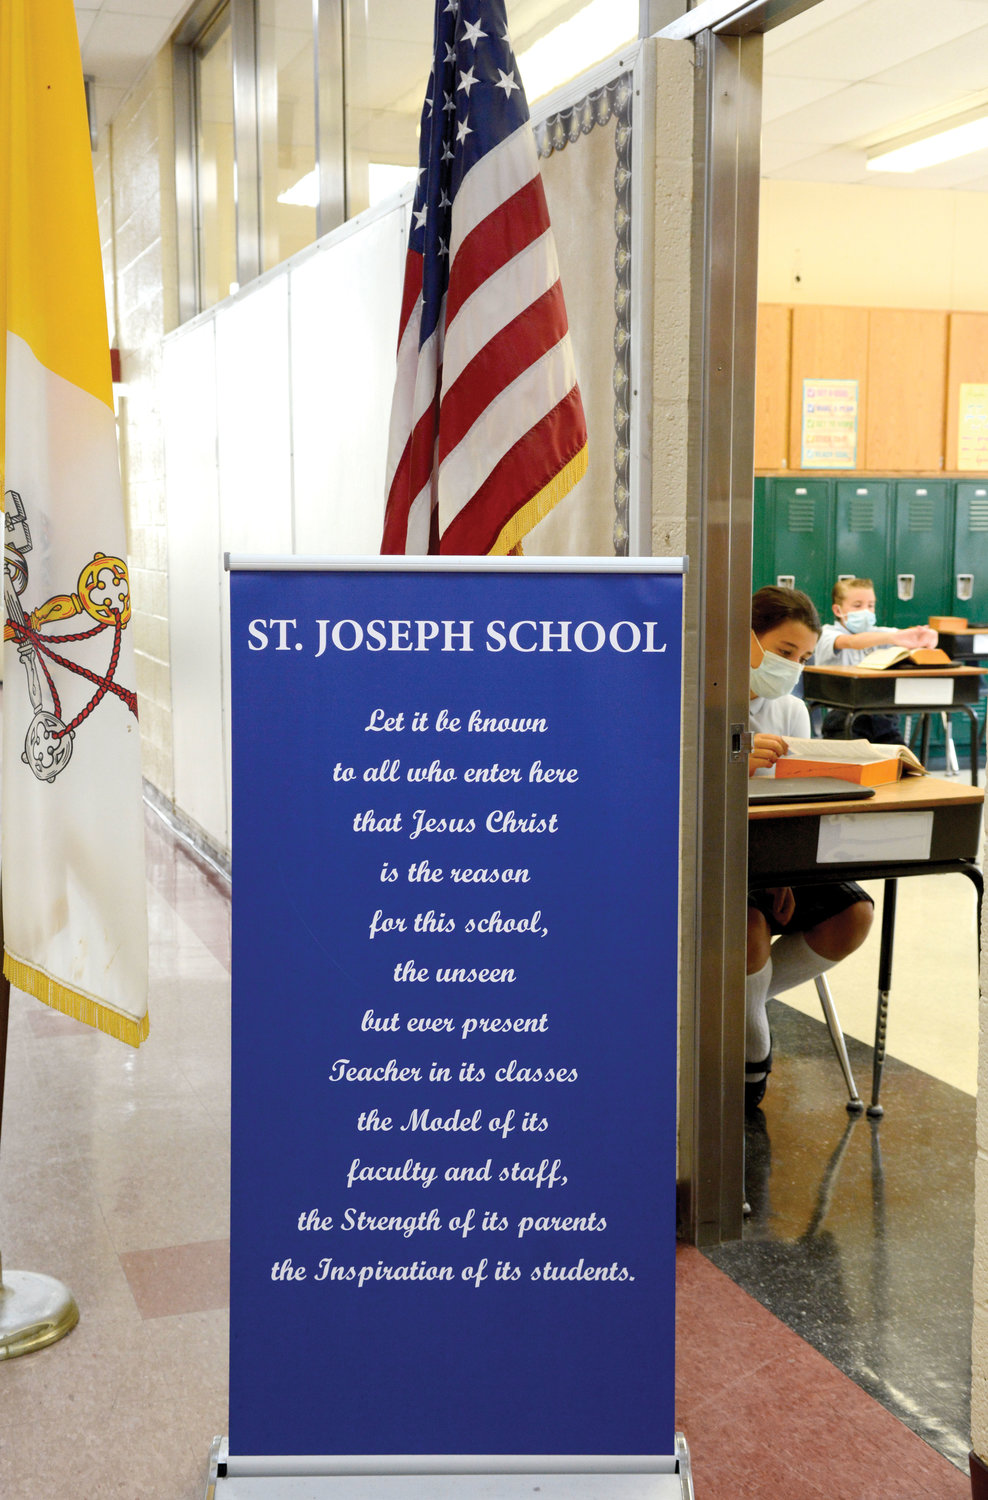 The school's adherence to Catholic identity is showcased through an inspirational banner placed near the Vatican and American flags.